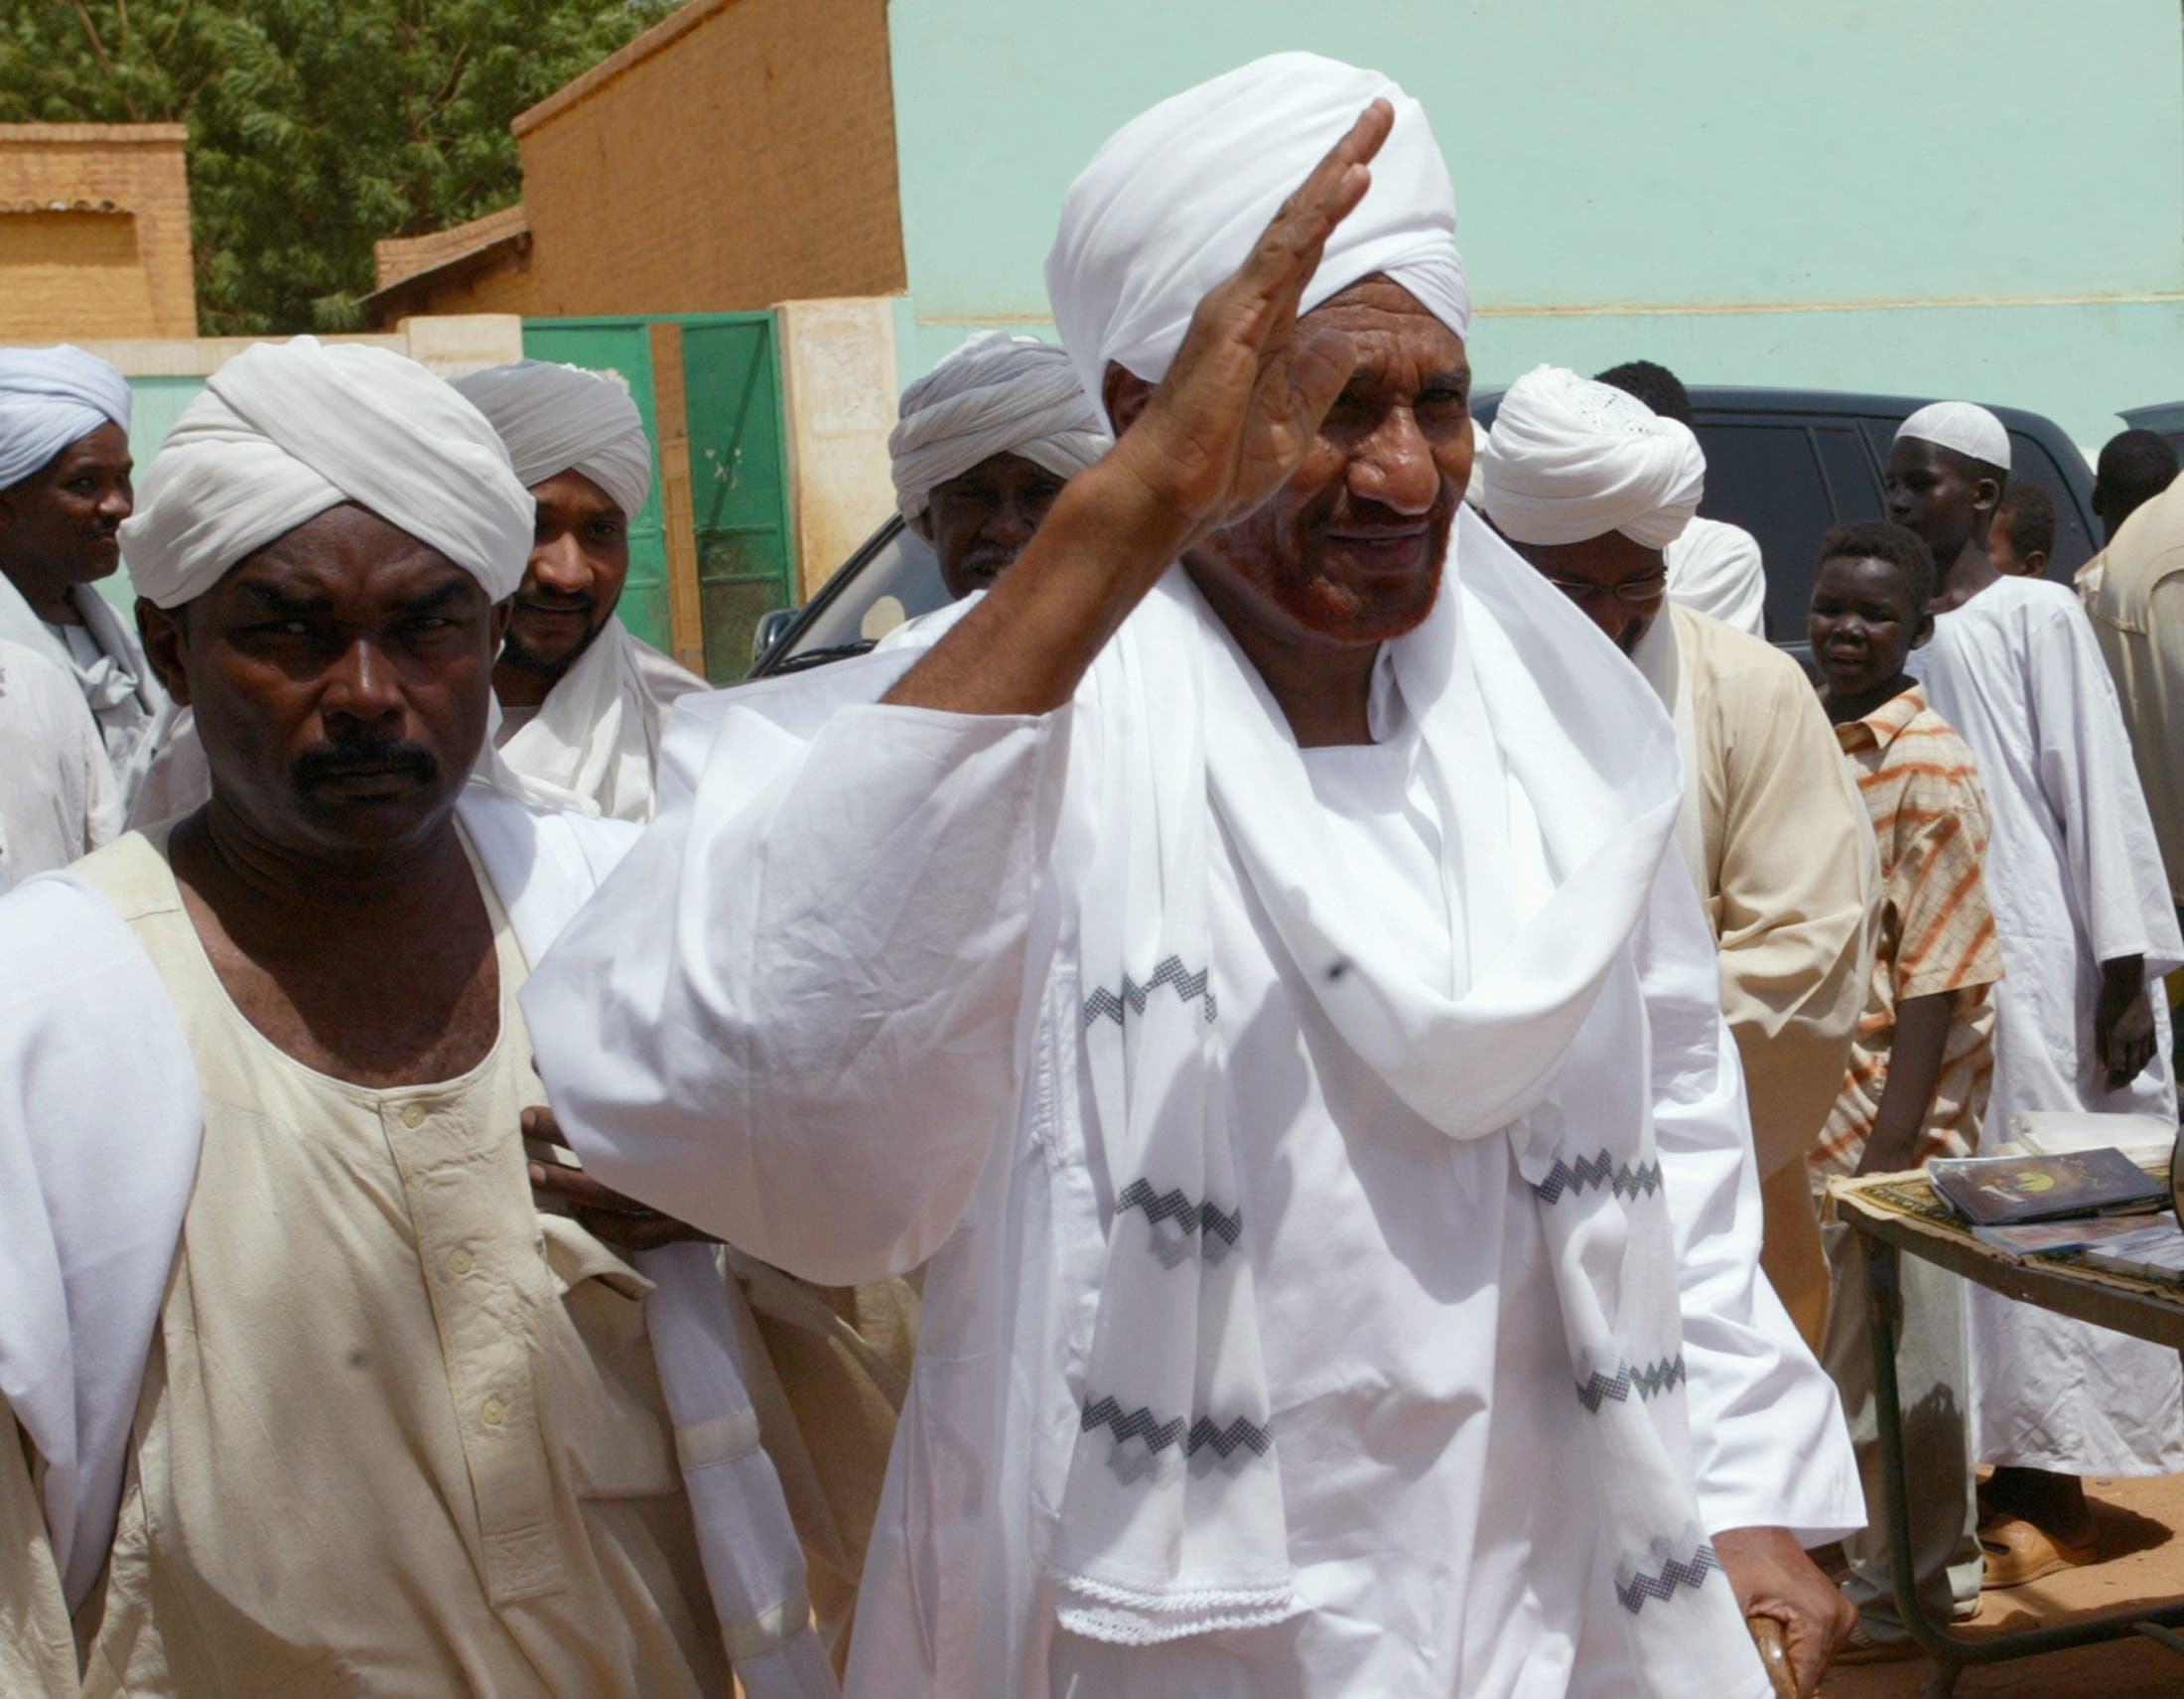 Sudan's former prime minister and opposition politician Sadiq al-Mahdi (R) waves to protesters during a demonstration against the Israeli raids on Lebanon, in Sudan's capital Khartoum, July 21, 2006. (Reuters)